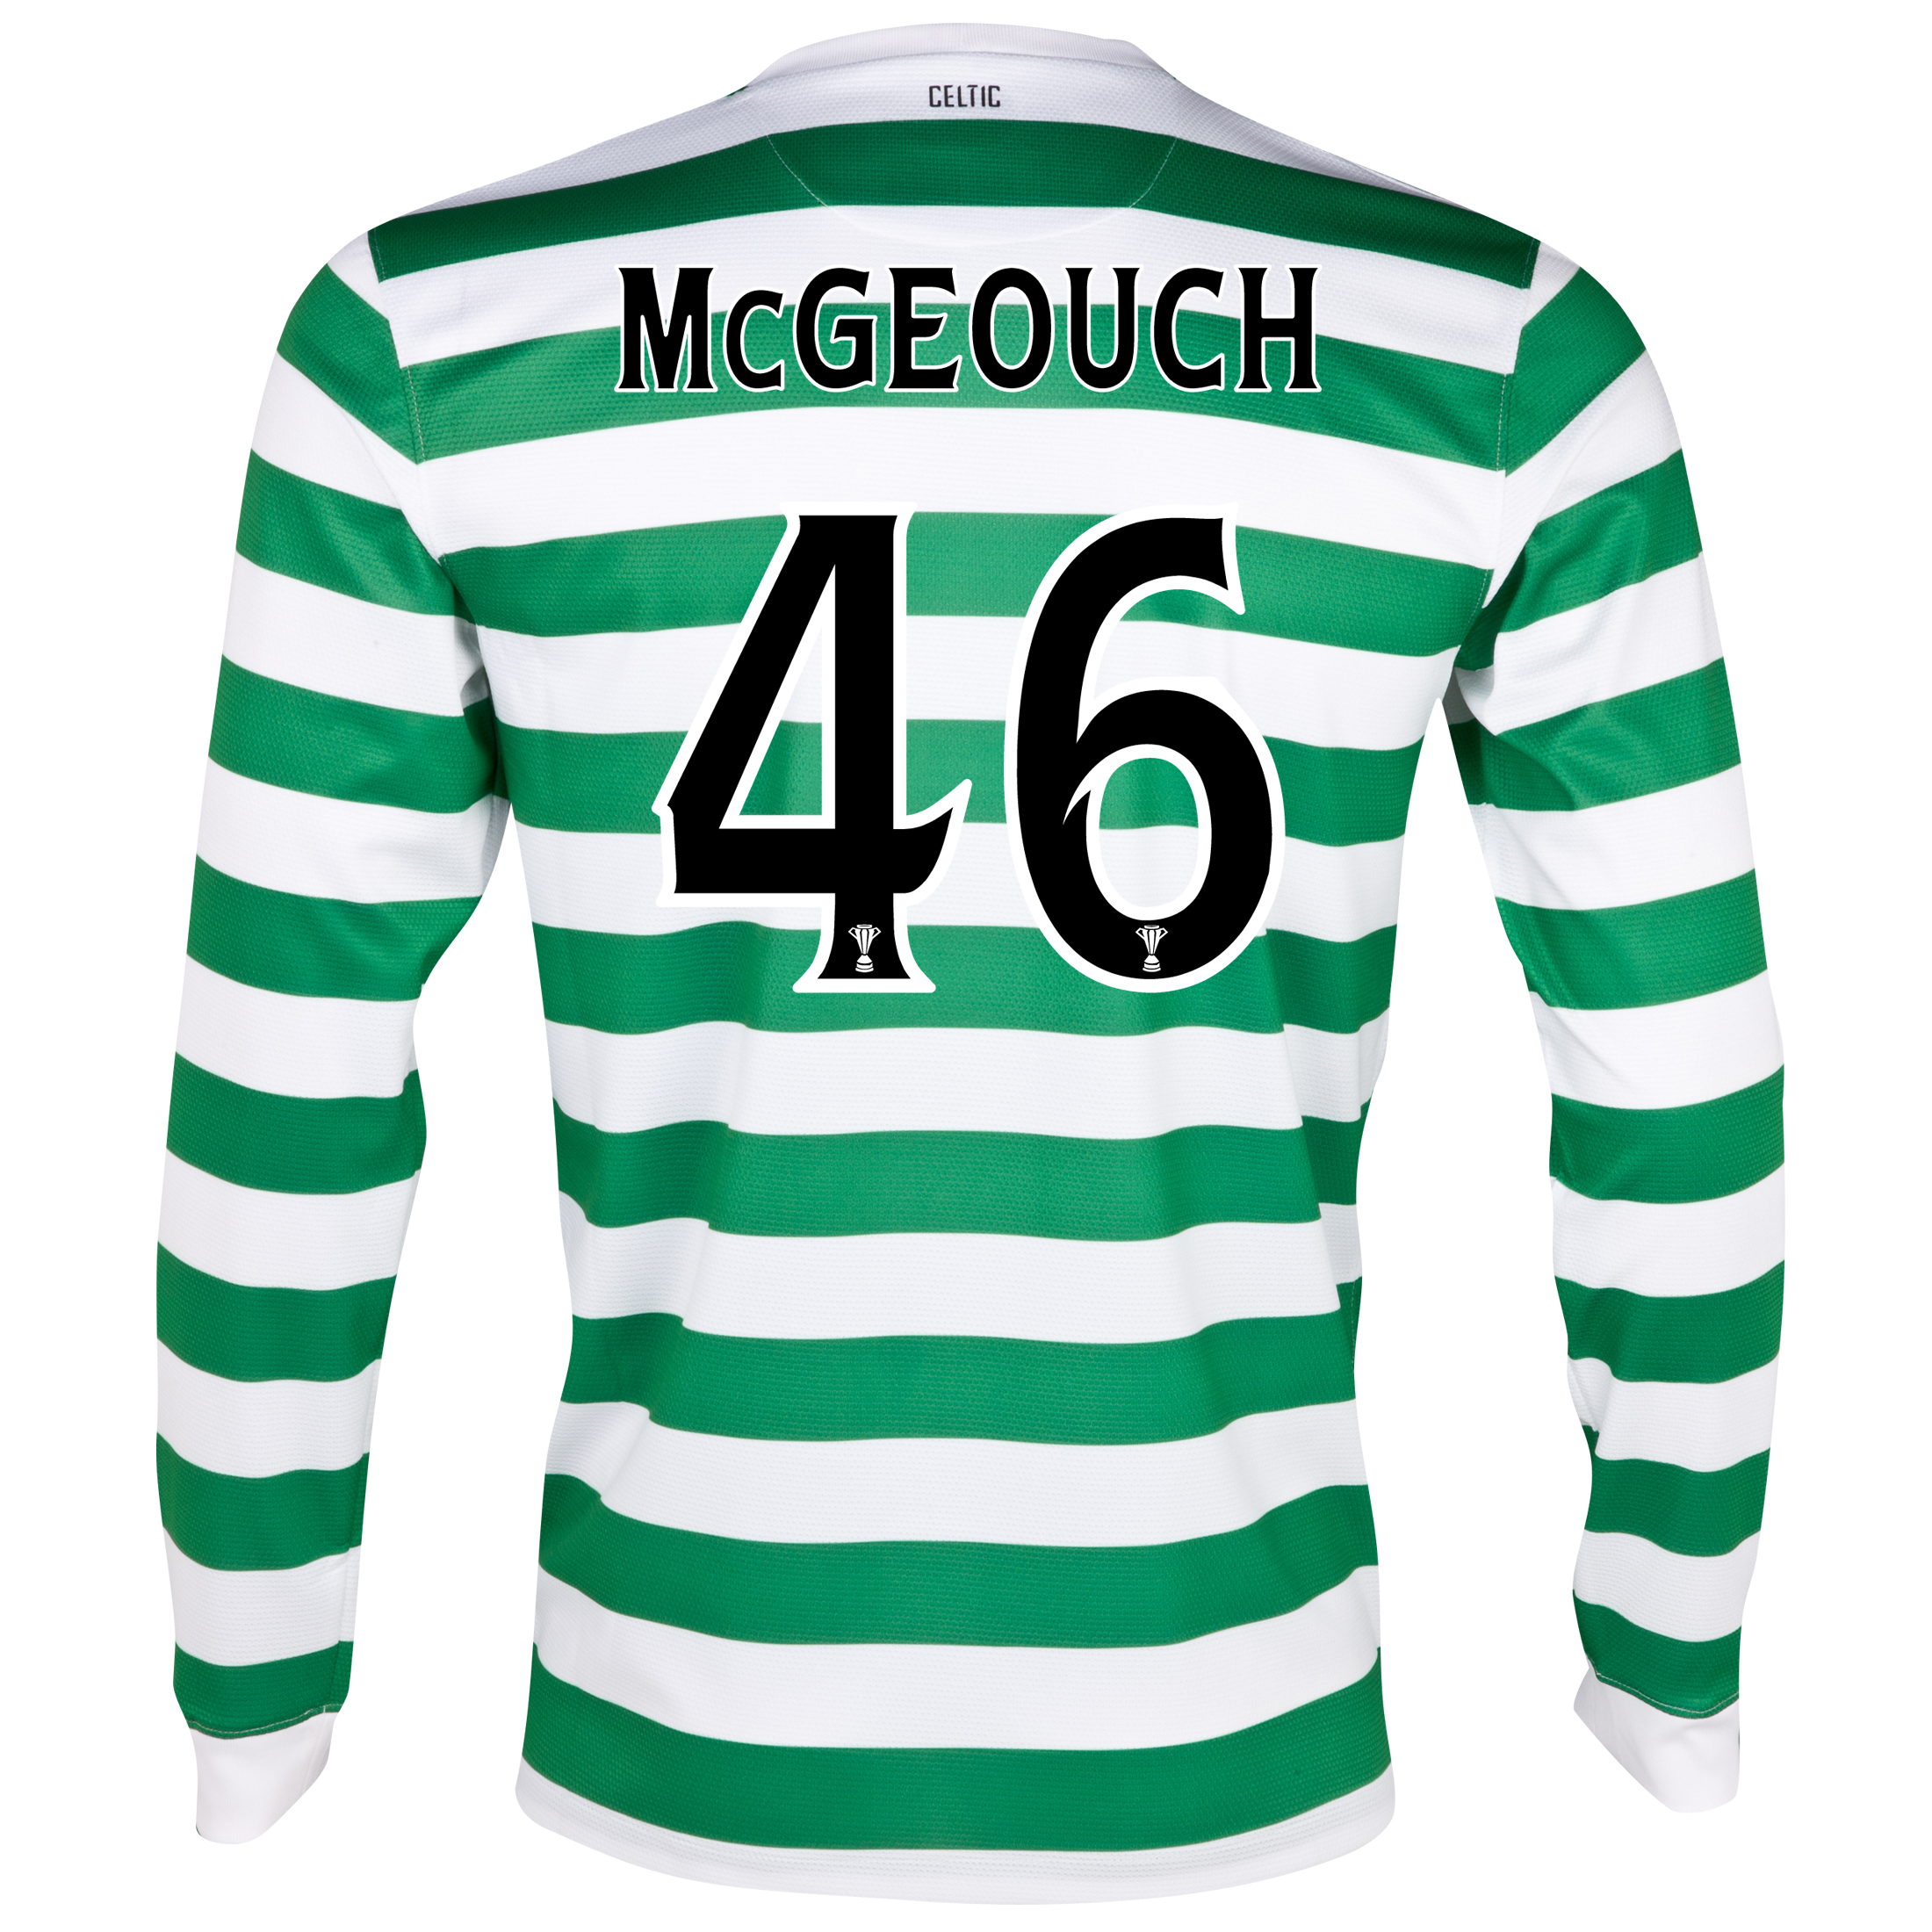 Celtic Home Shirt 2012/13 - Long Sleeved - No Sponsor with McGeouch  46 printing